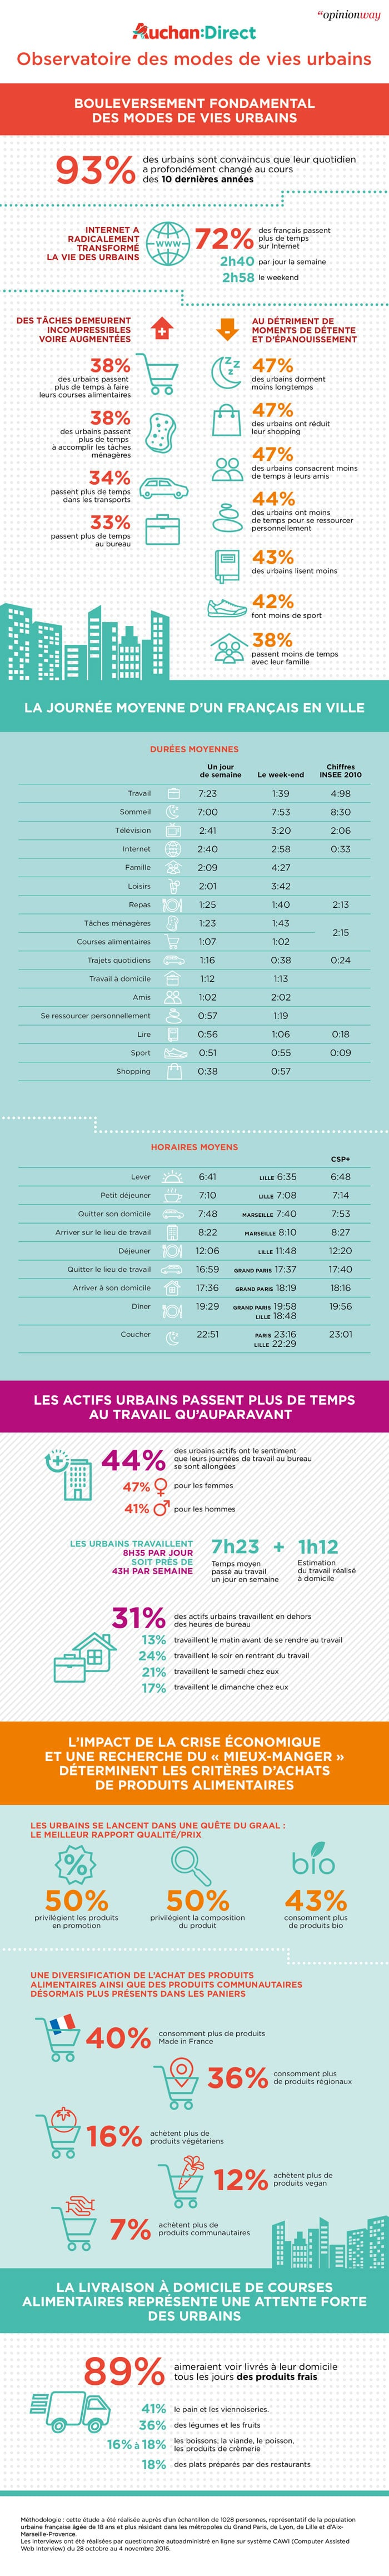 Infographie internet consommation